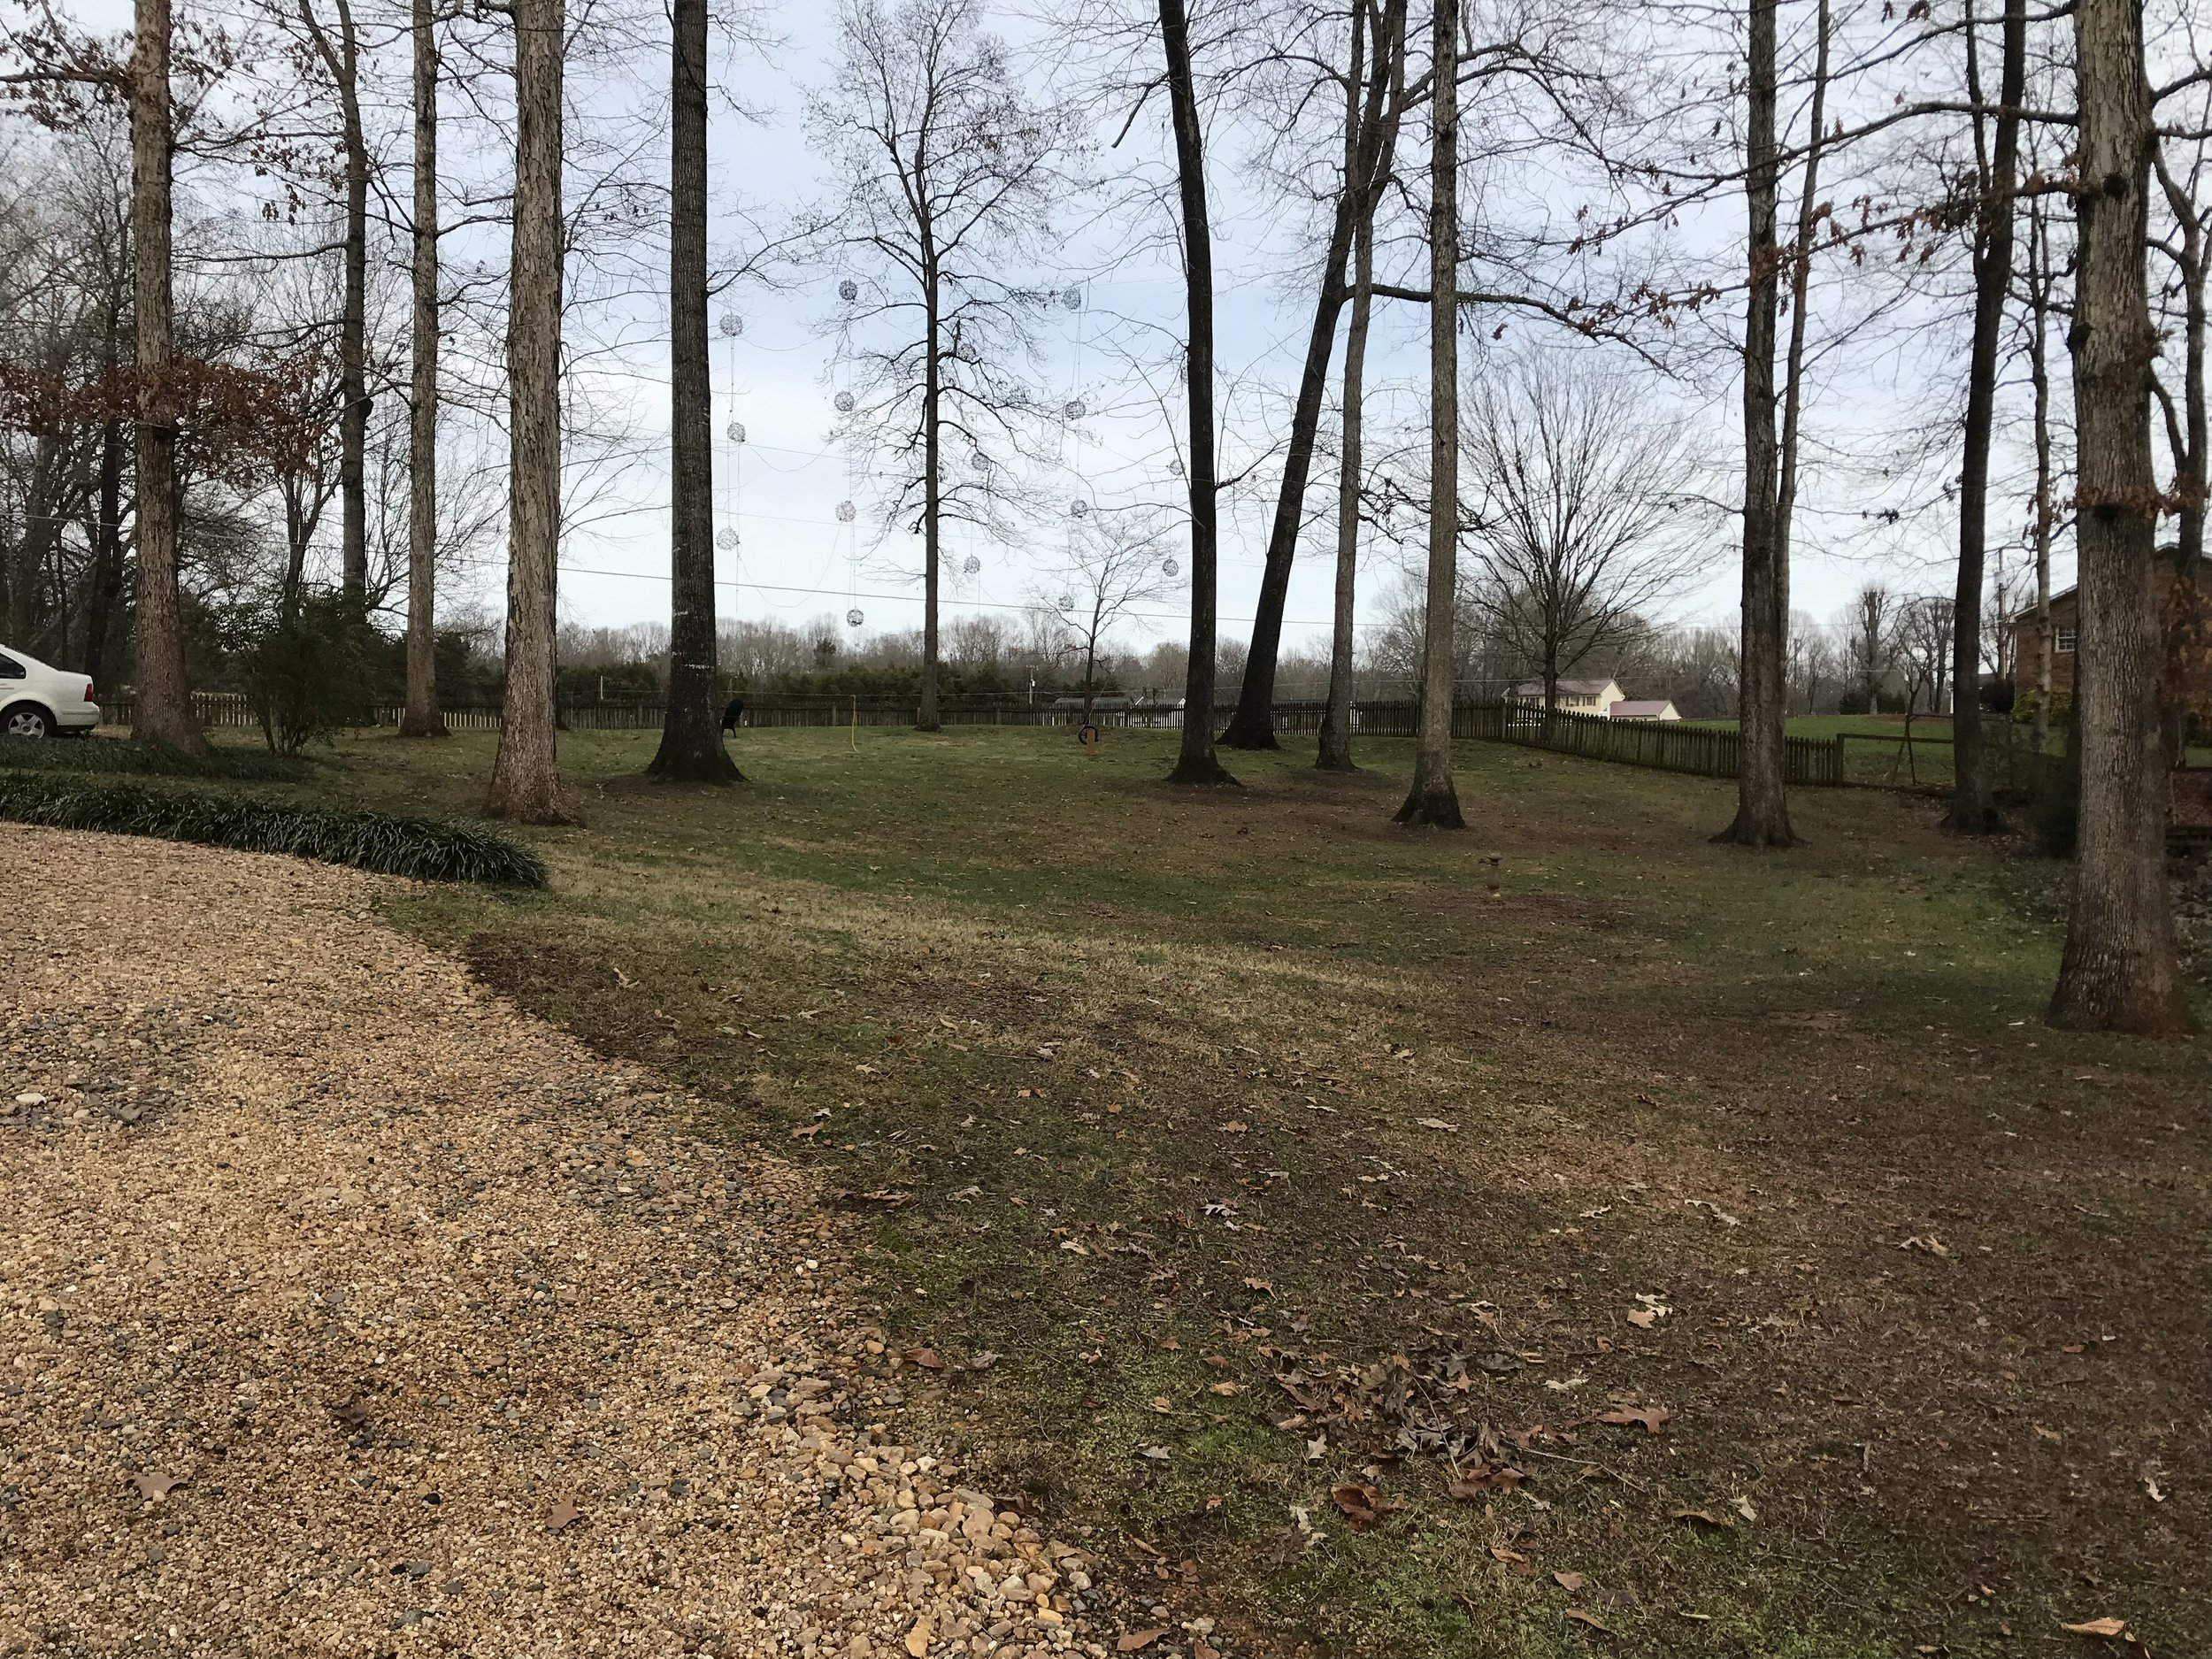 This is photo 6. Looking at the side yard, a more gradual slope down to lot 47 from the front of the property.